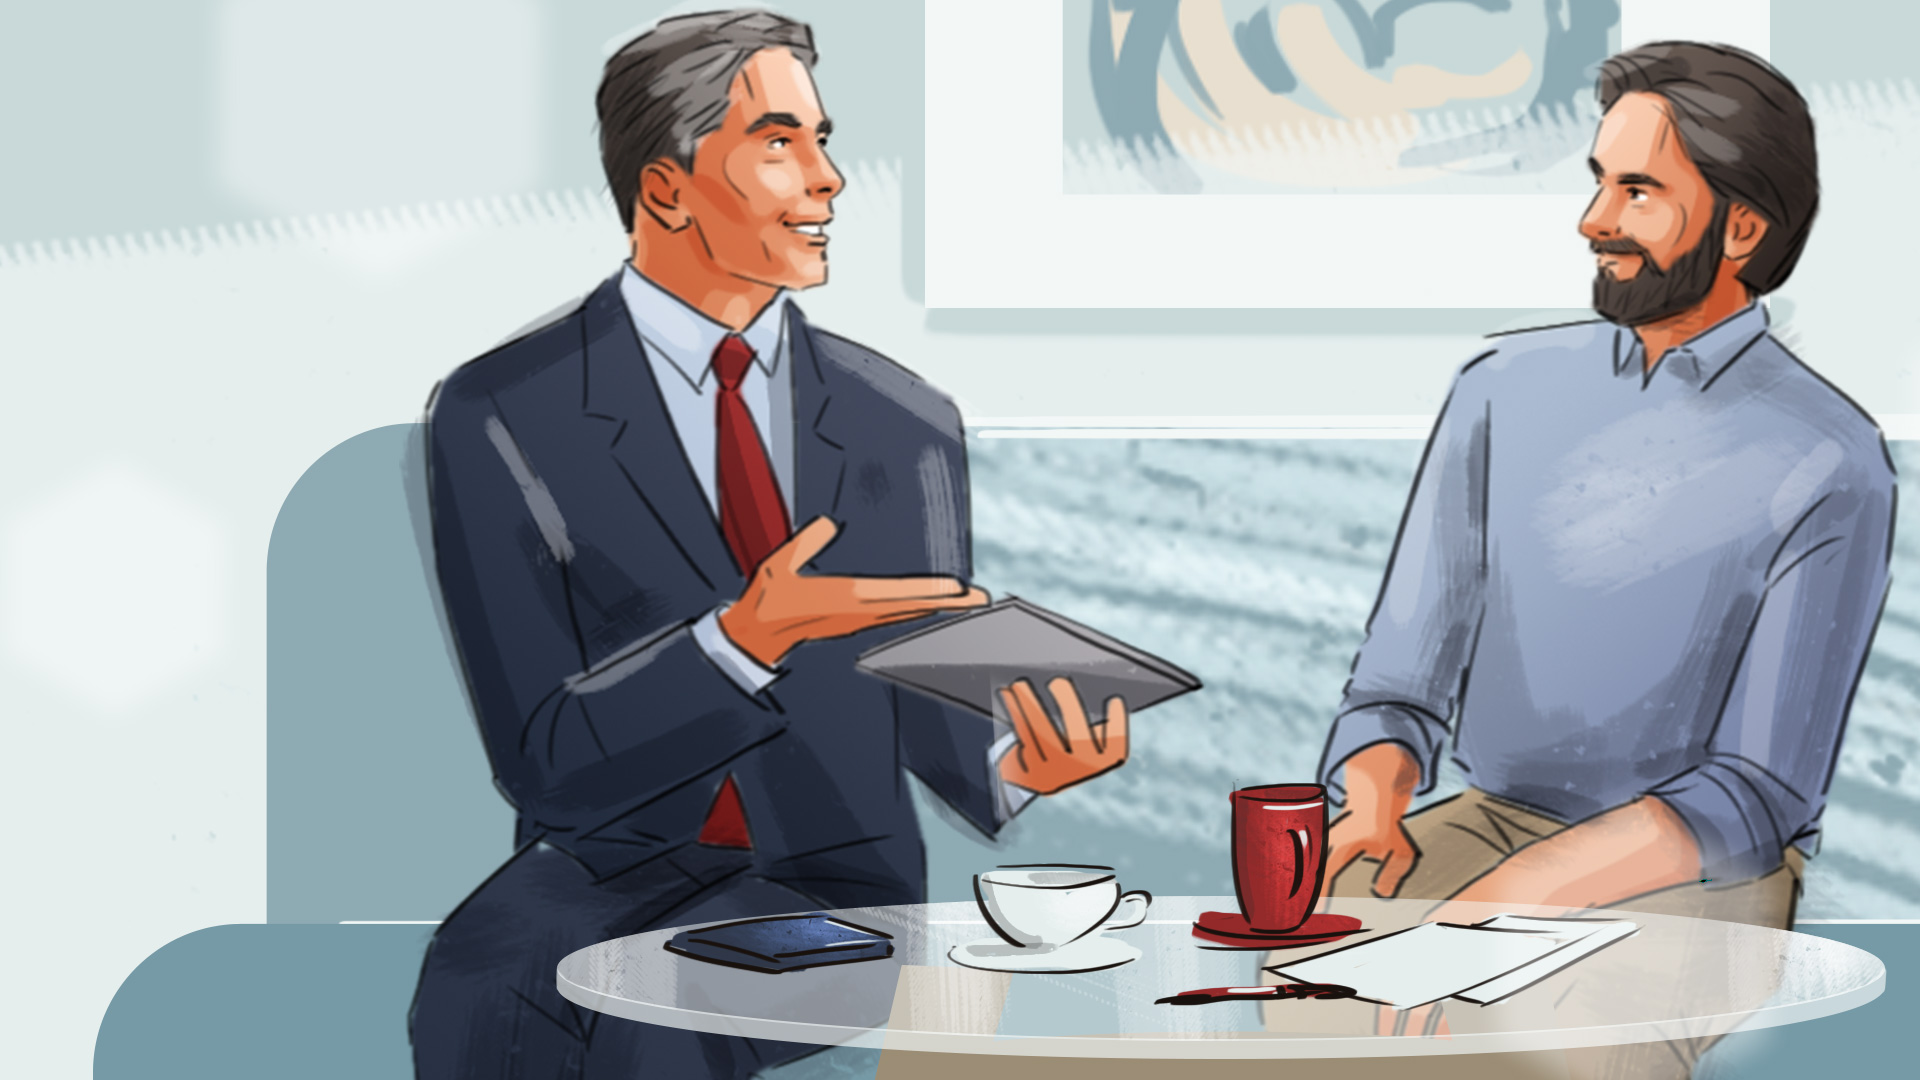 illustration bussines conversation advertising